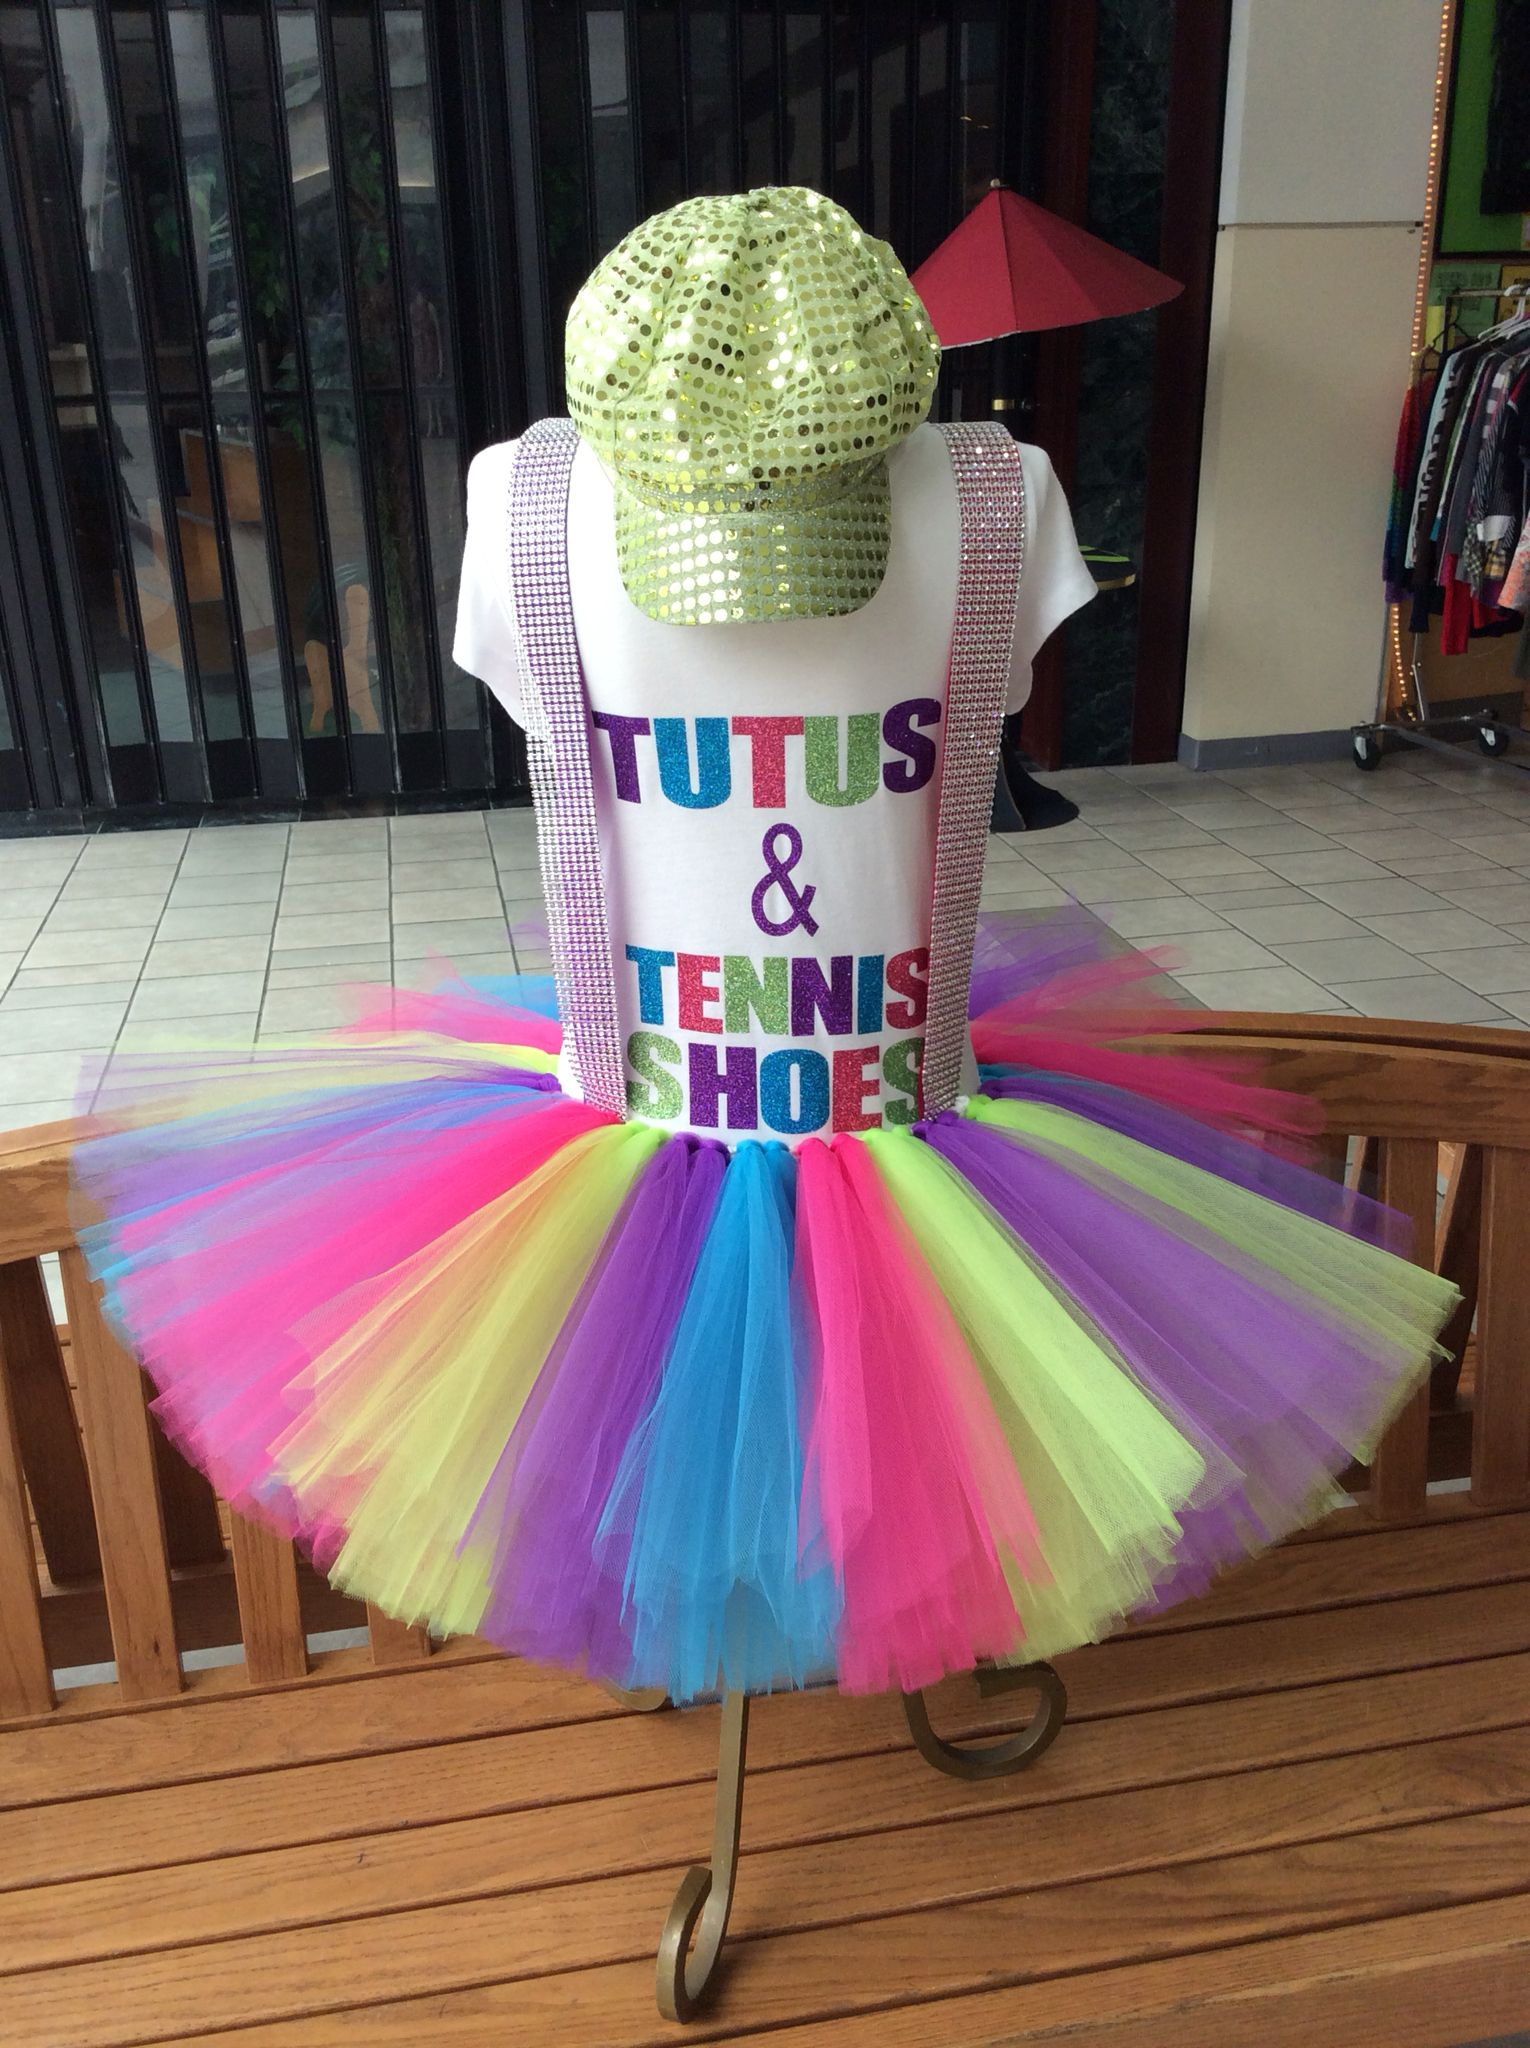 Tutus & Tennis Shoes, McDonough. 54 likes · 8 were here. TUTUs and TENNIS Shoes is a MOBILE party company where we bring the party to YOU. No longer will.